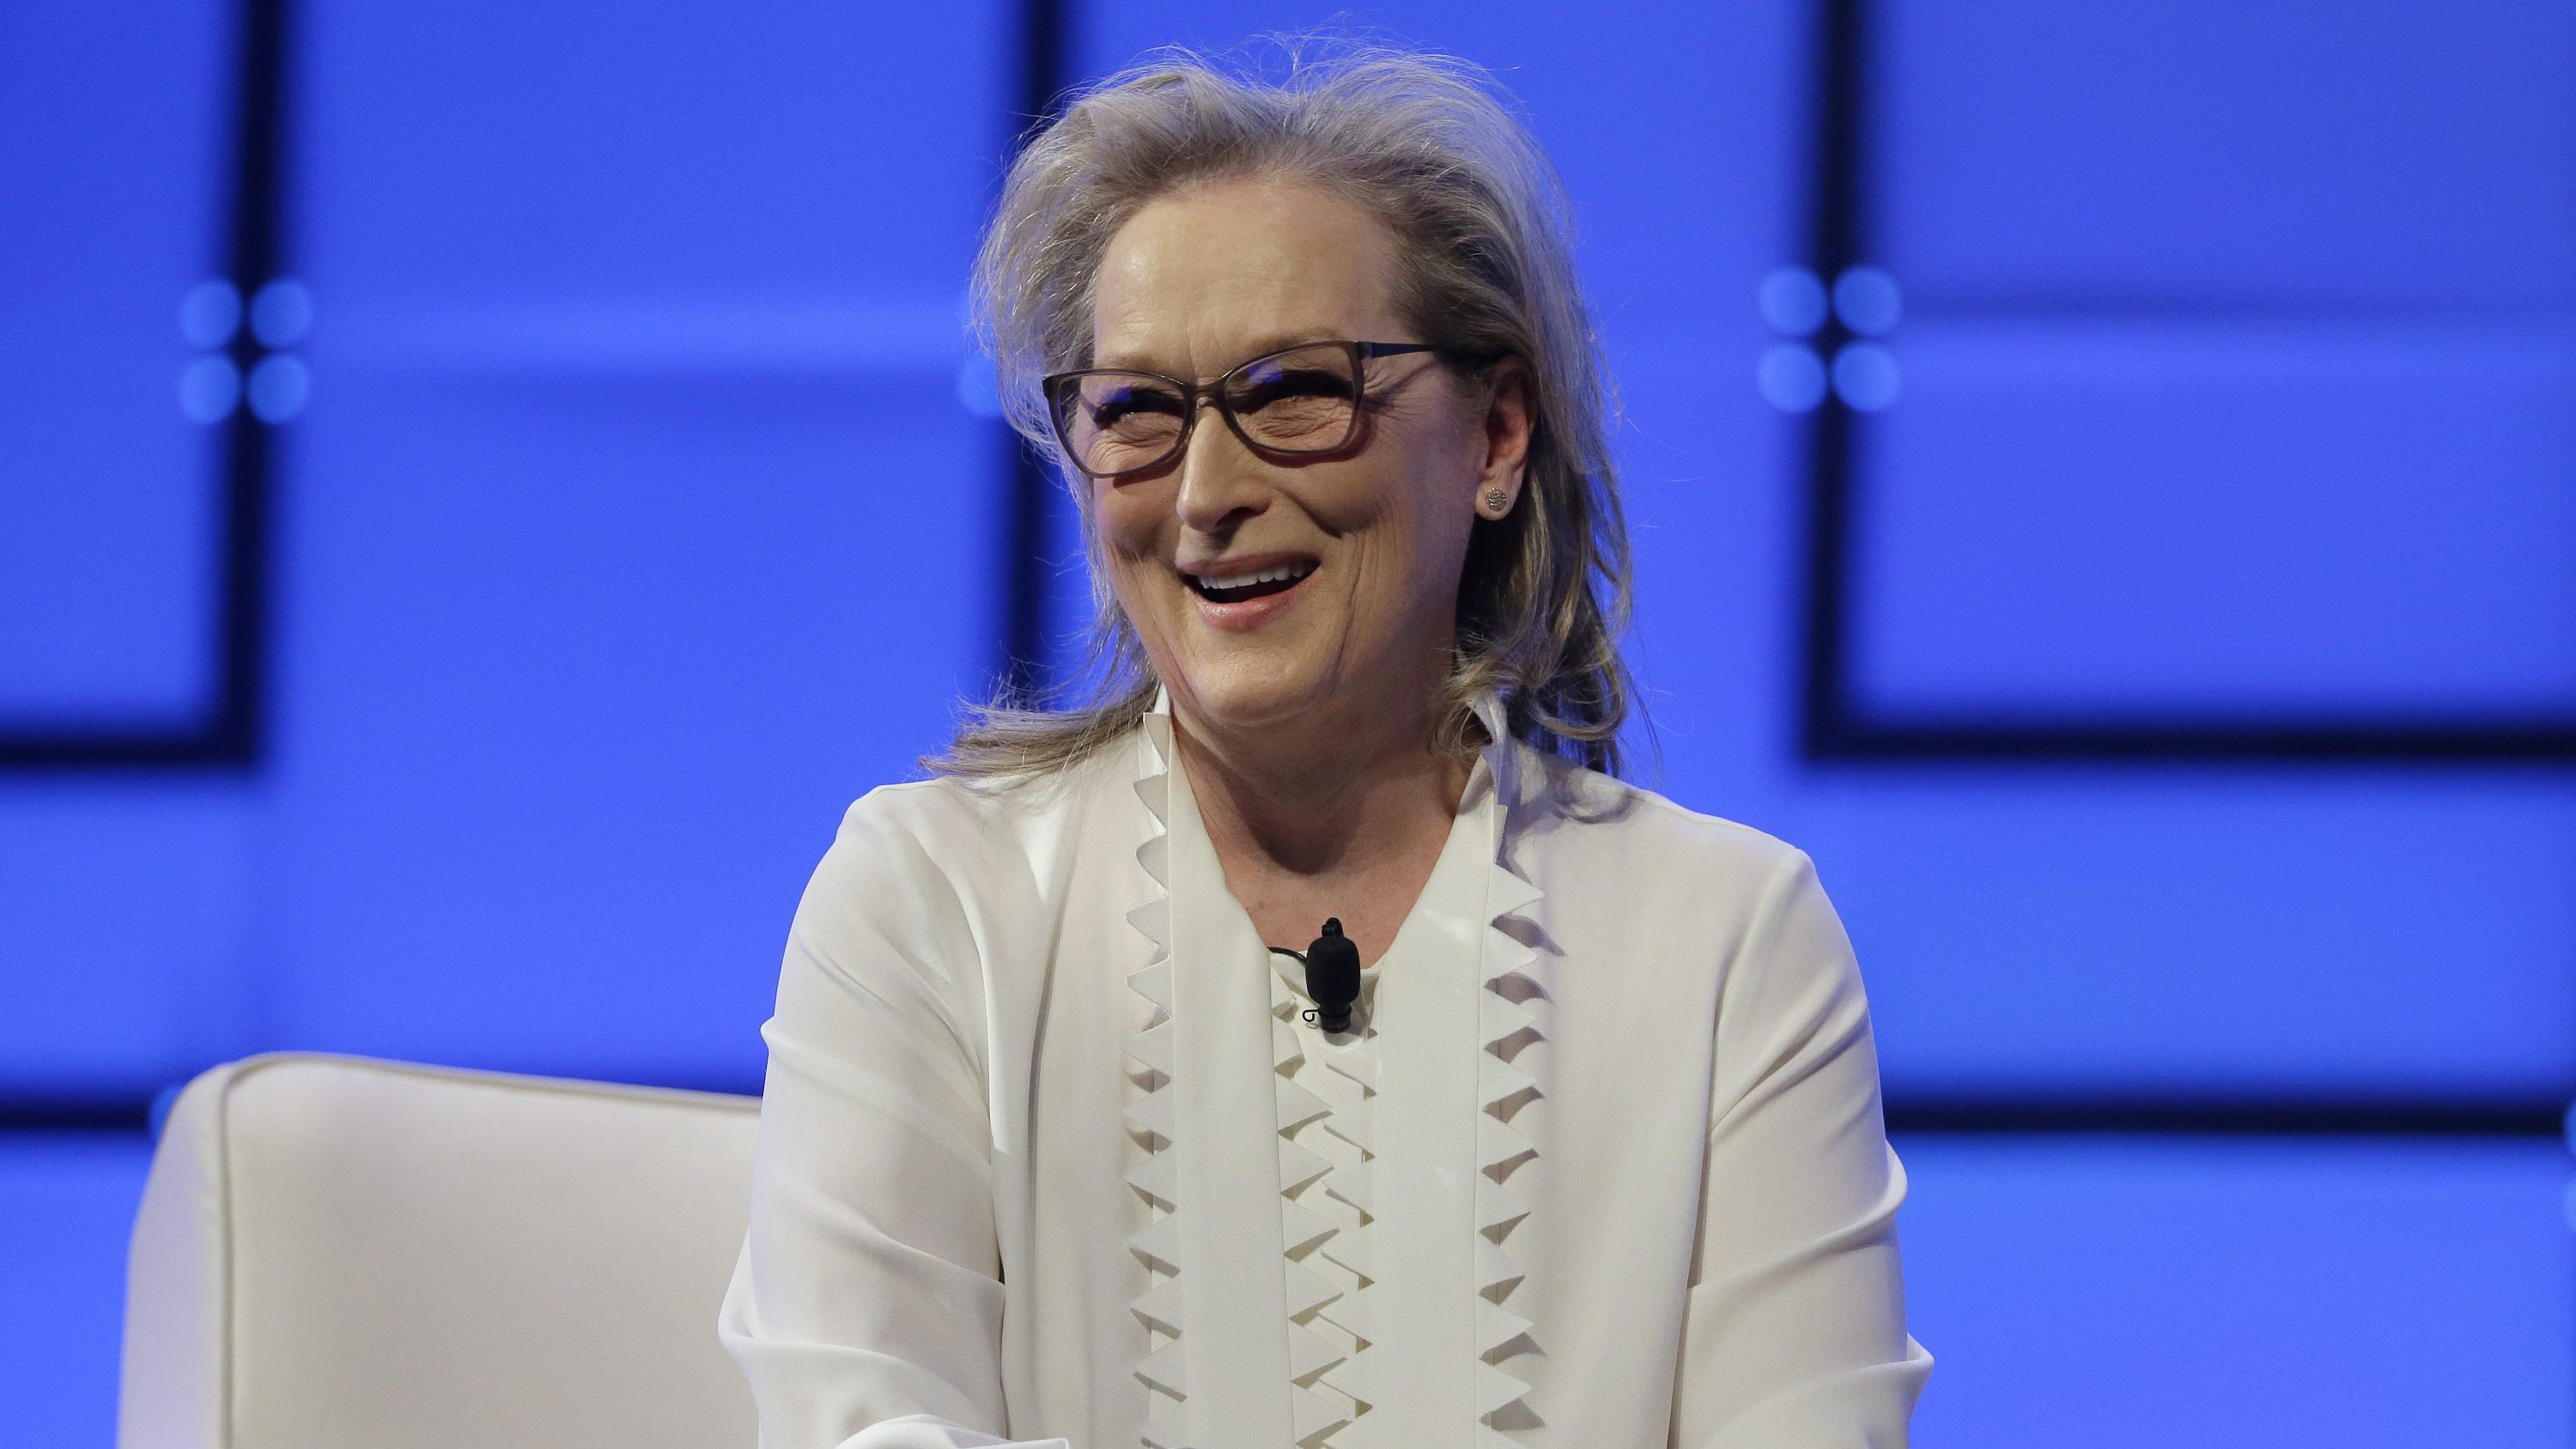 Academy Award-winning actress Meryl Streep appears, Thursday, Dec. 7, 2017, during the 13th annual Massachusetts Conference for Women, in Boston. The conference opened Thursday against a backdrop of expanding allegations of sexual misconduct against prominent men in Hollywood, politics and the media.